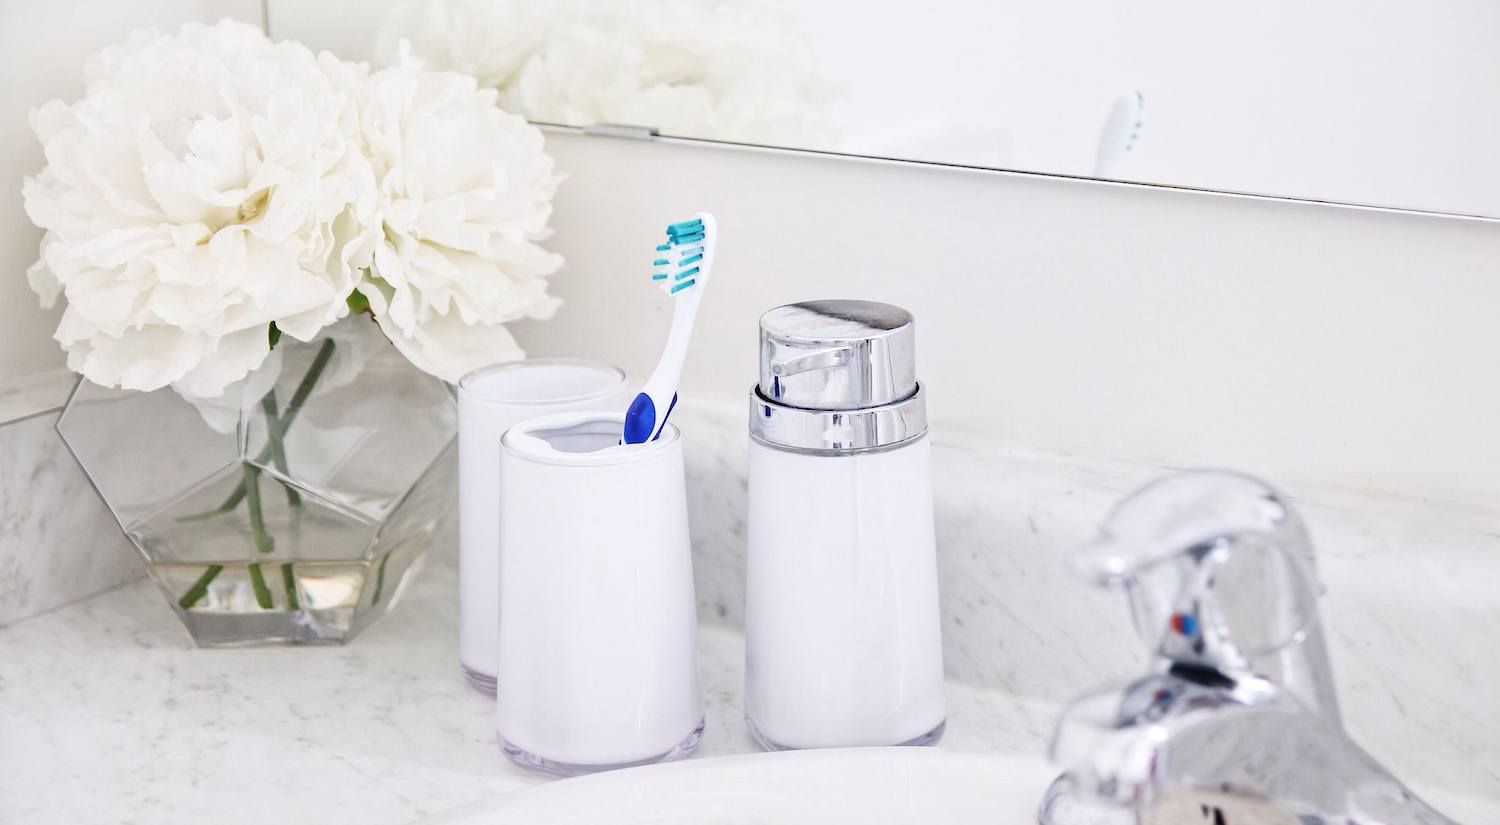 white acrylic soap pump, toothbrush holder, and tumbler